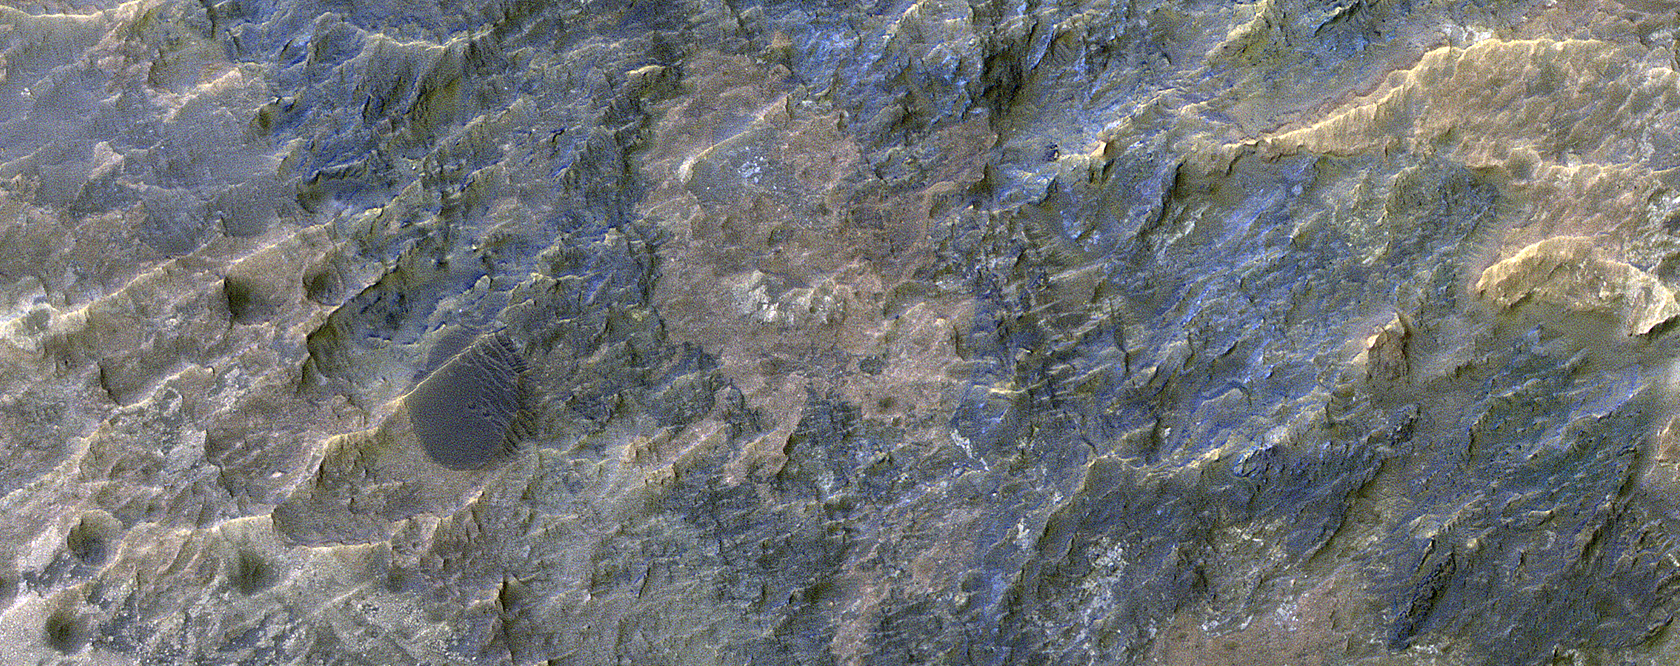 Colorful Impact Ejecta in Ladon Valles